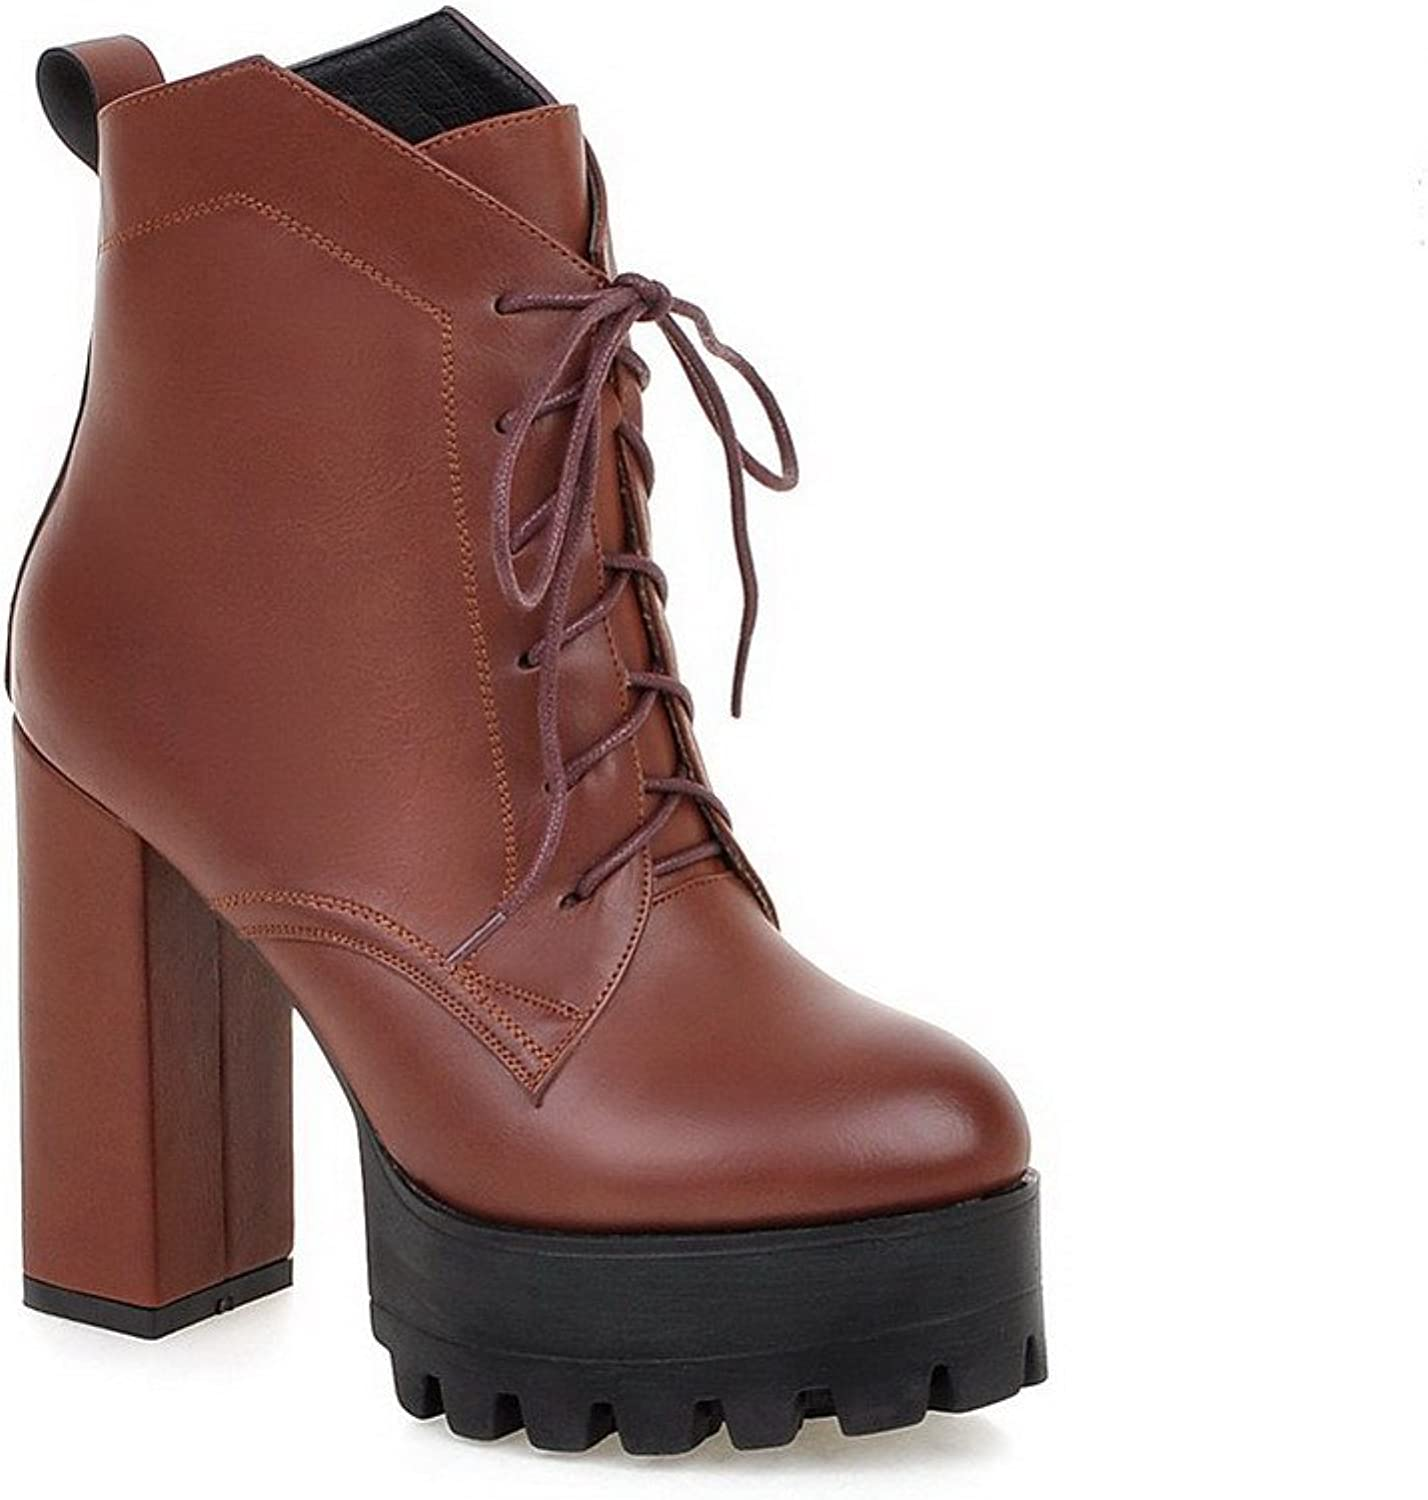 WeenFashion Women's Lace up Round Closed Toe High Heels Pu Low Top Boots